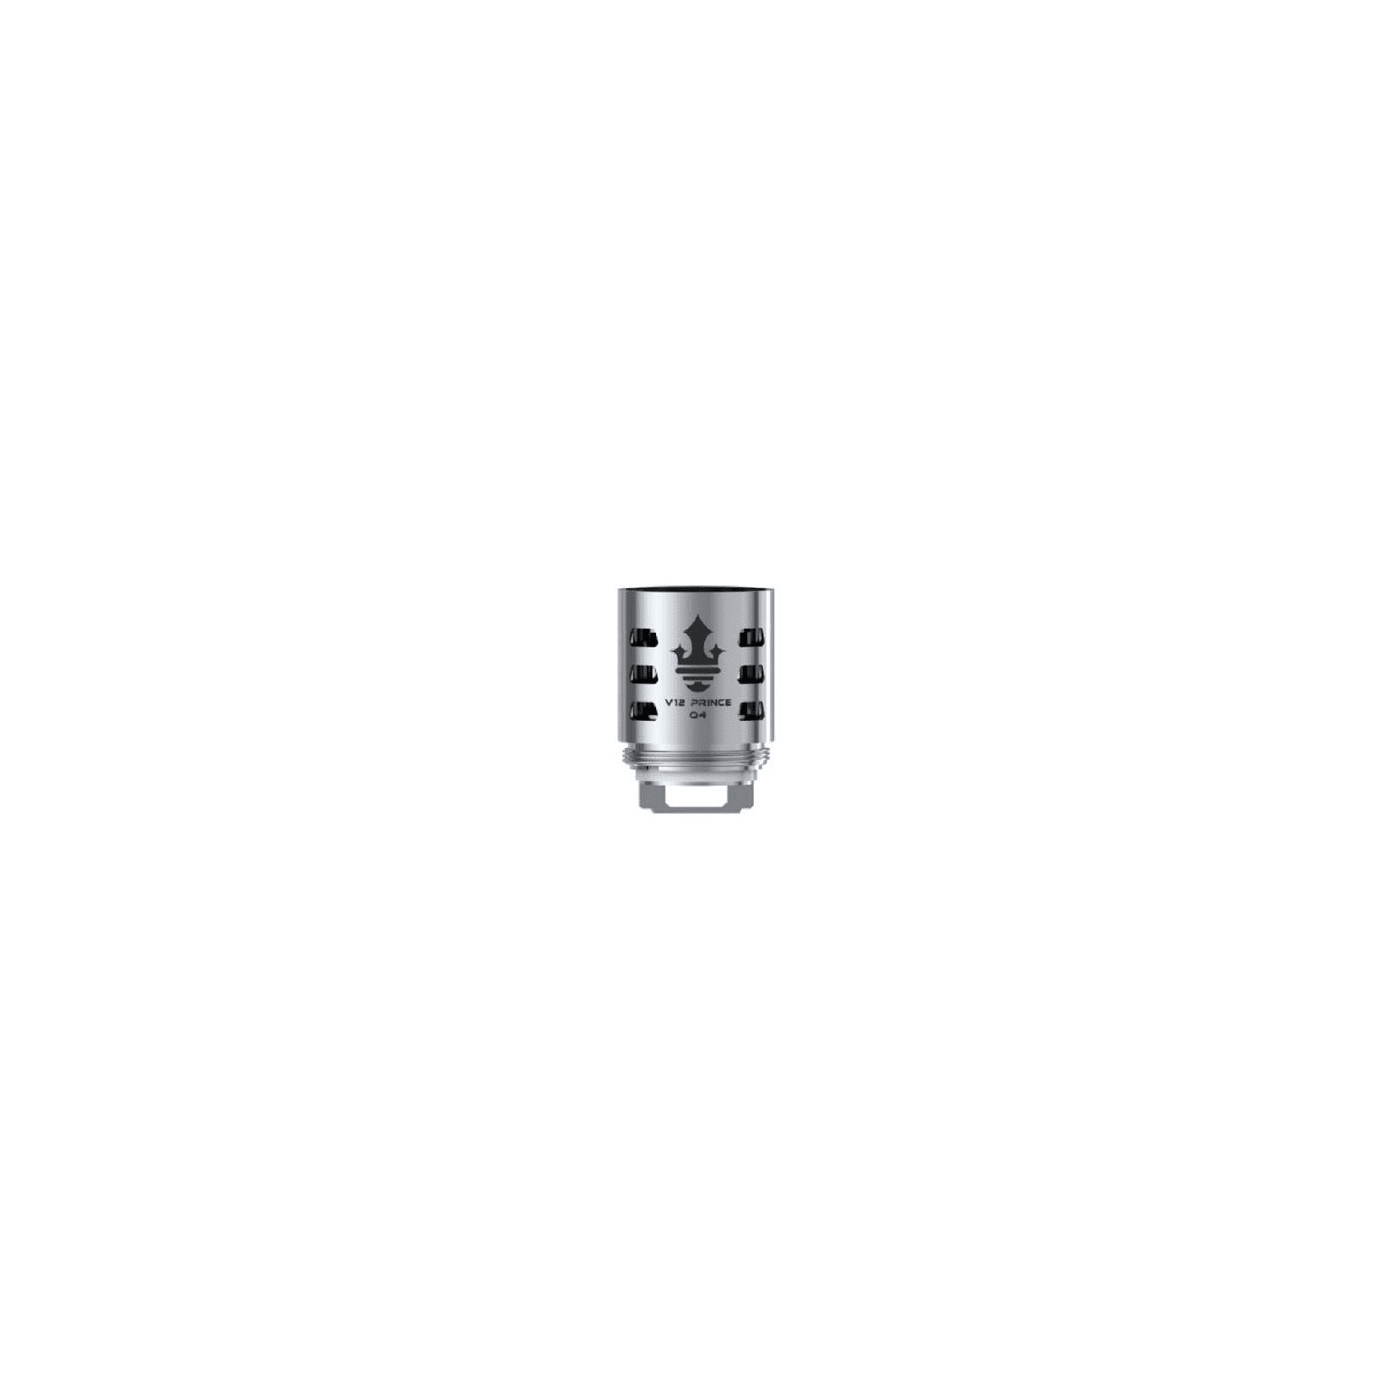 Smok TFV12 Prince Q4 Replacement Coil